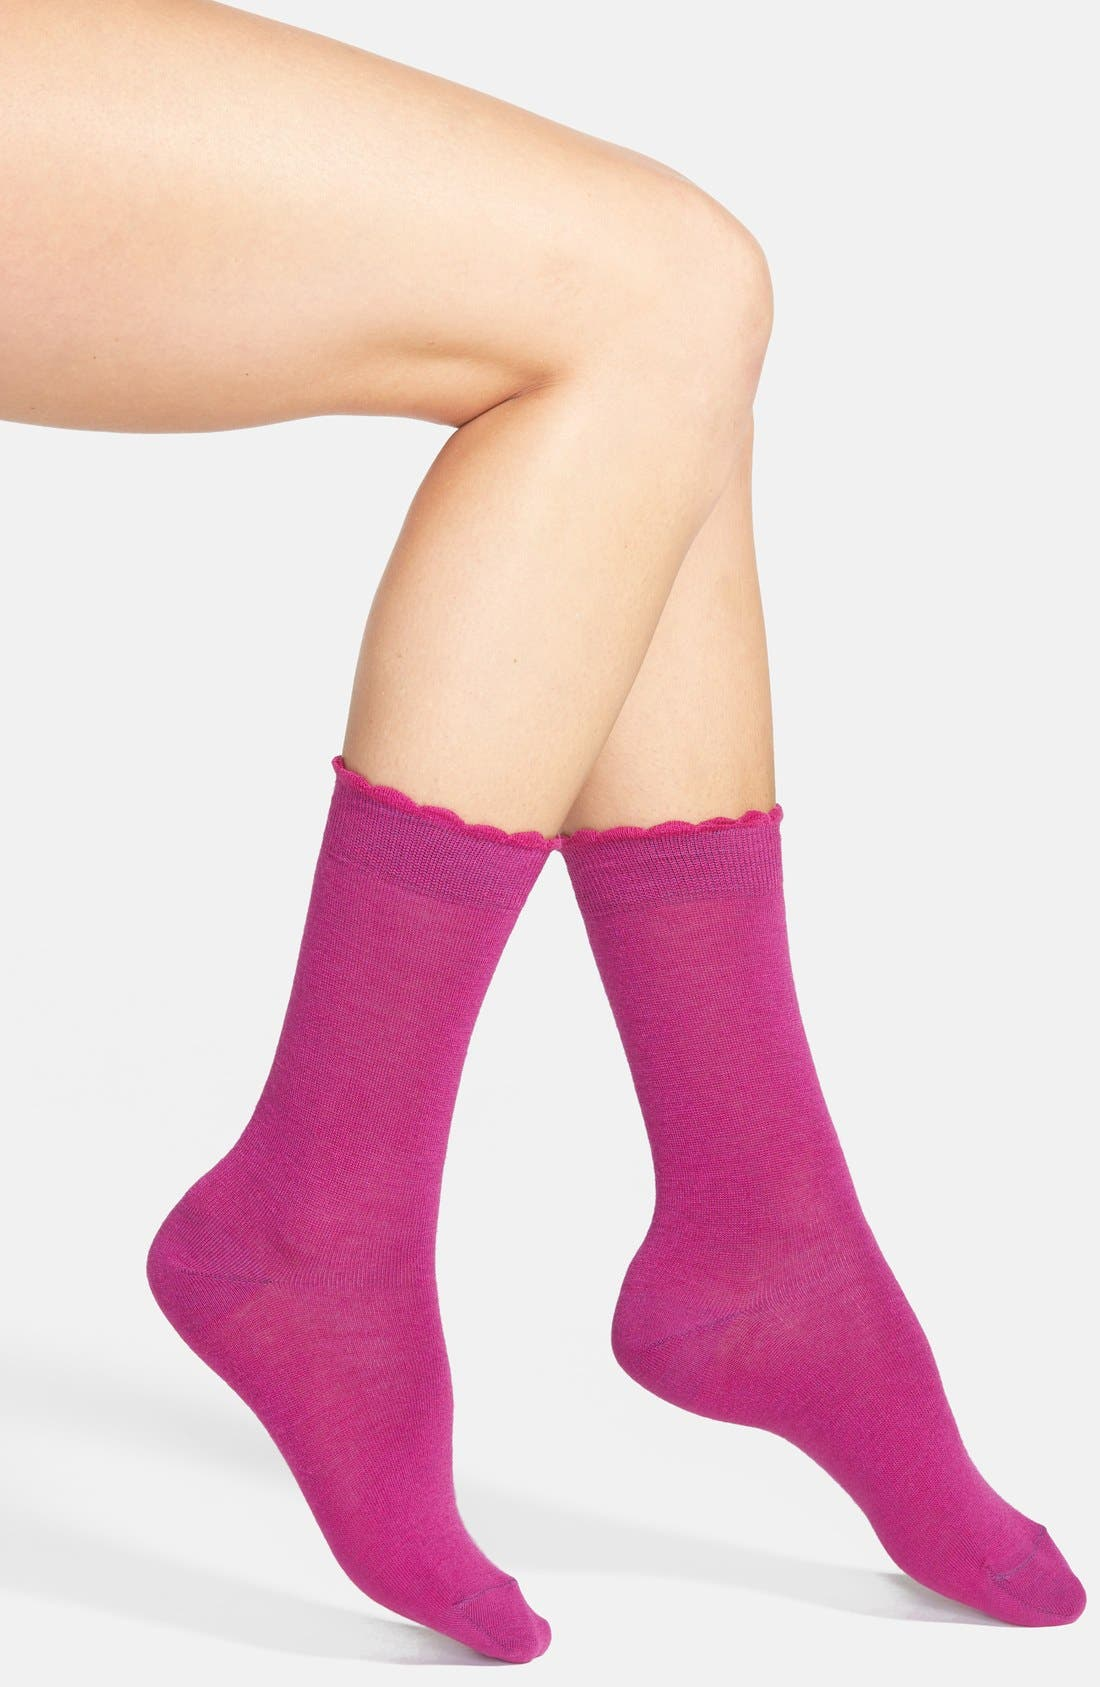 Alternate Image 1 Selected - Nordstrom Flat Knit Merino Wool Crew Socks